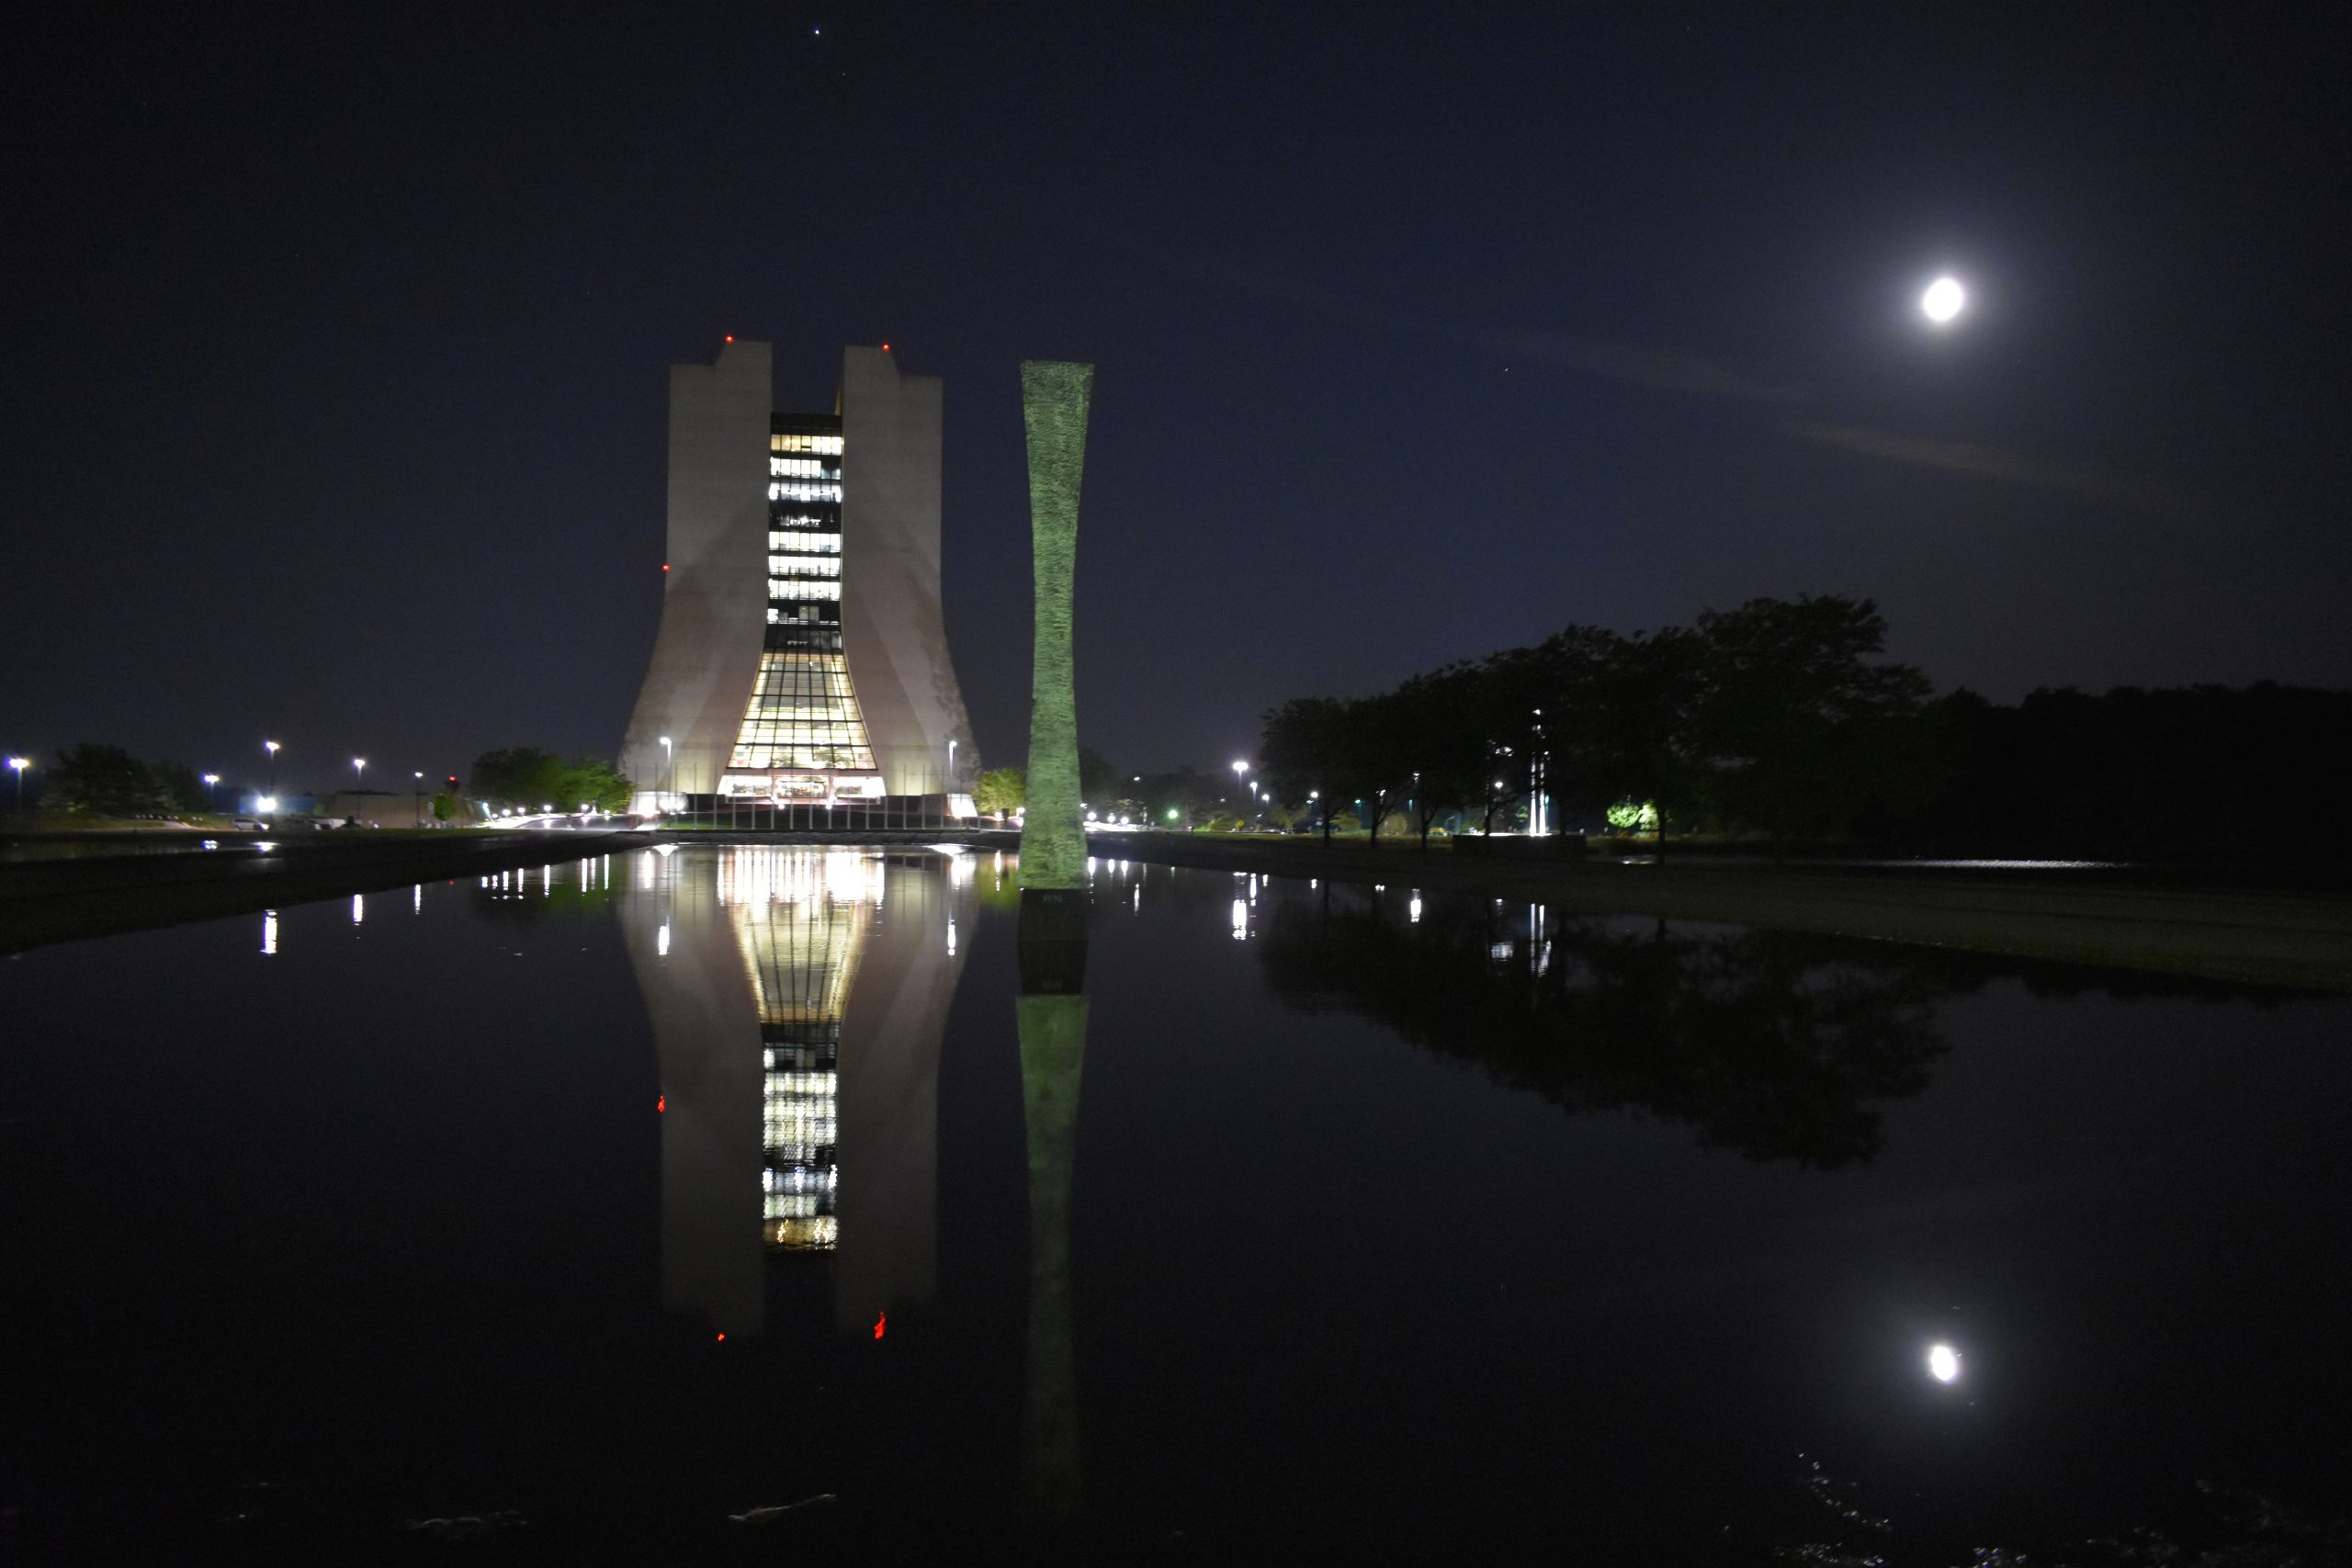 Beautiful! The photographer snapped this picture on May 25 at 2:30 a.m. on the way back from some nighttime photography in Chicago. Wilson Hall, night, Acqua Alle Funi, sculpture, obelisk, building, landscape, water, pond Photo: Prabhjot Singh